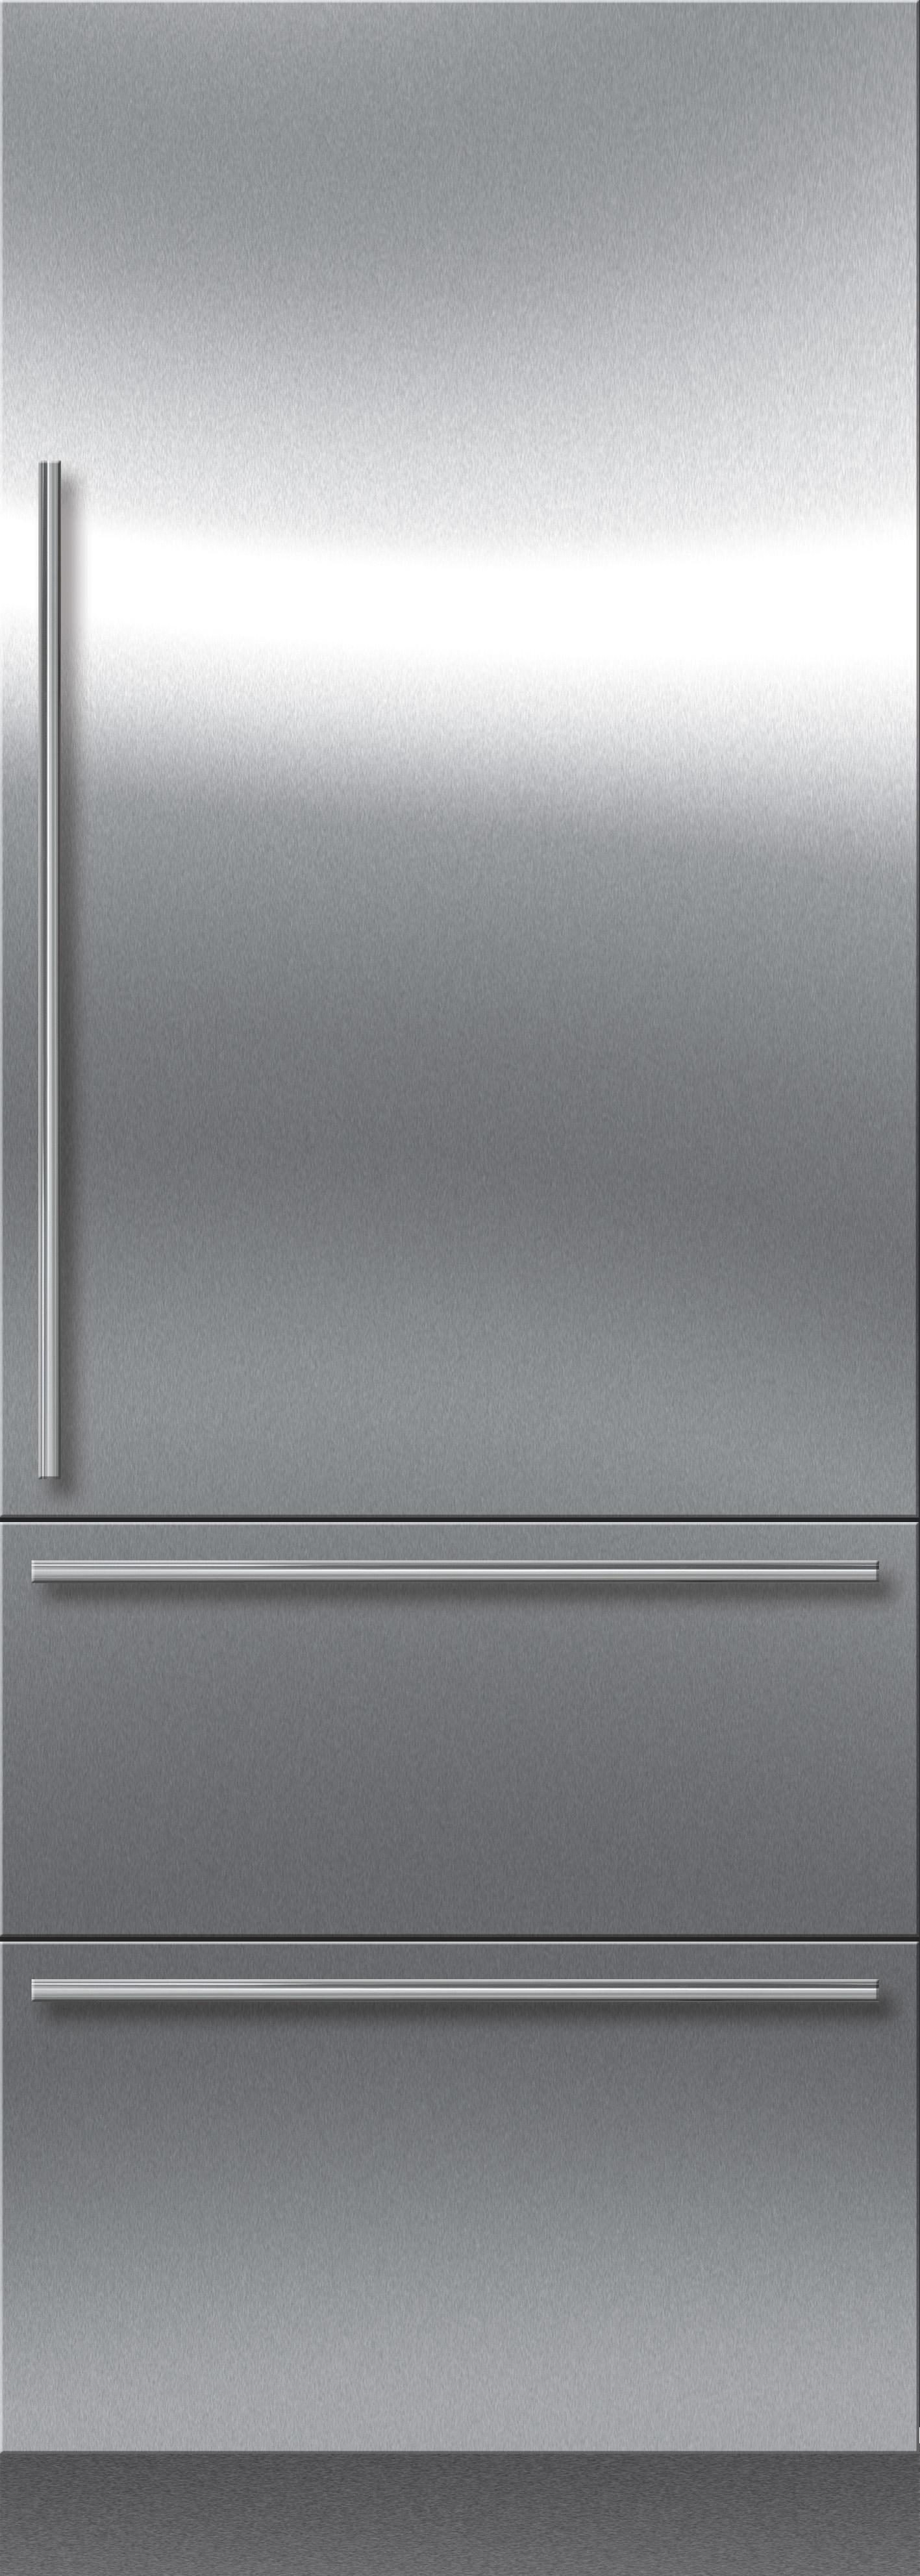 "Integrated Refrigeration 36"" All Refrigerator by Sub-Zero at Furniture and ApplianceMart"